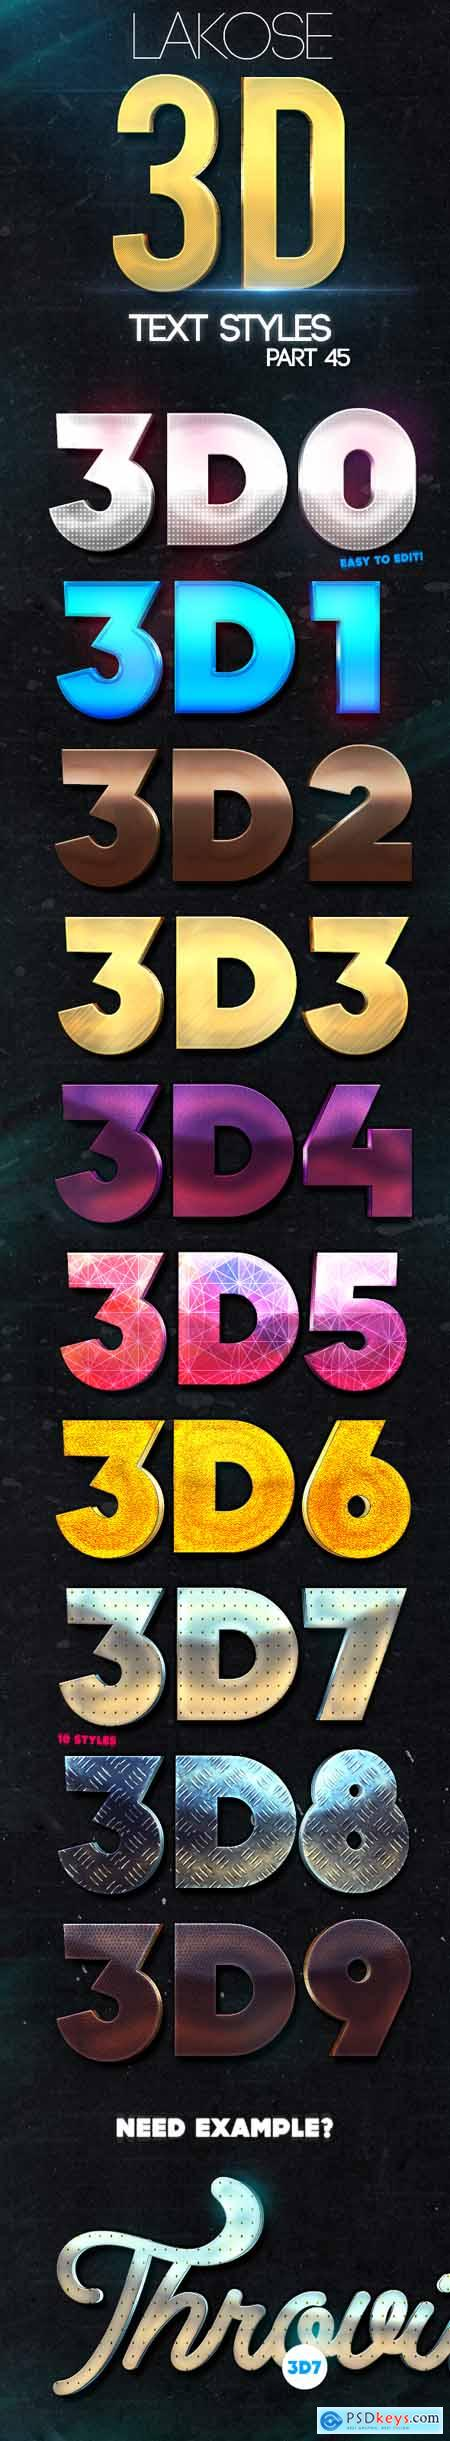 Graphicriver Lakose 3D Text Styles Part 45